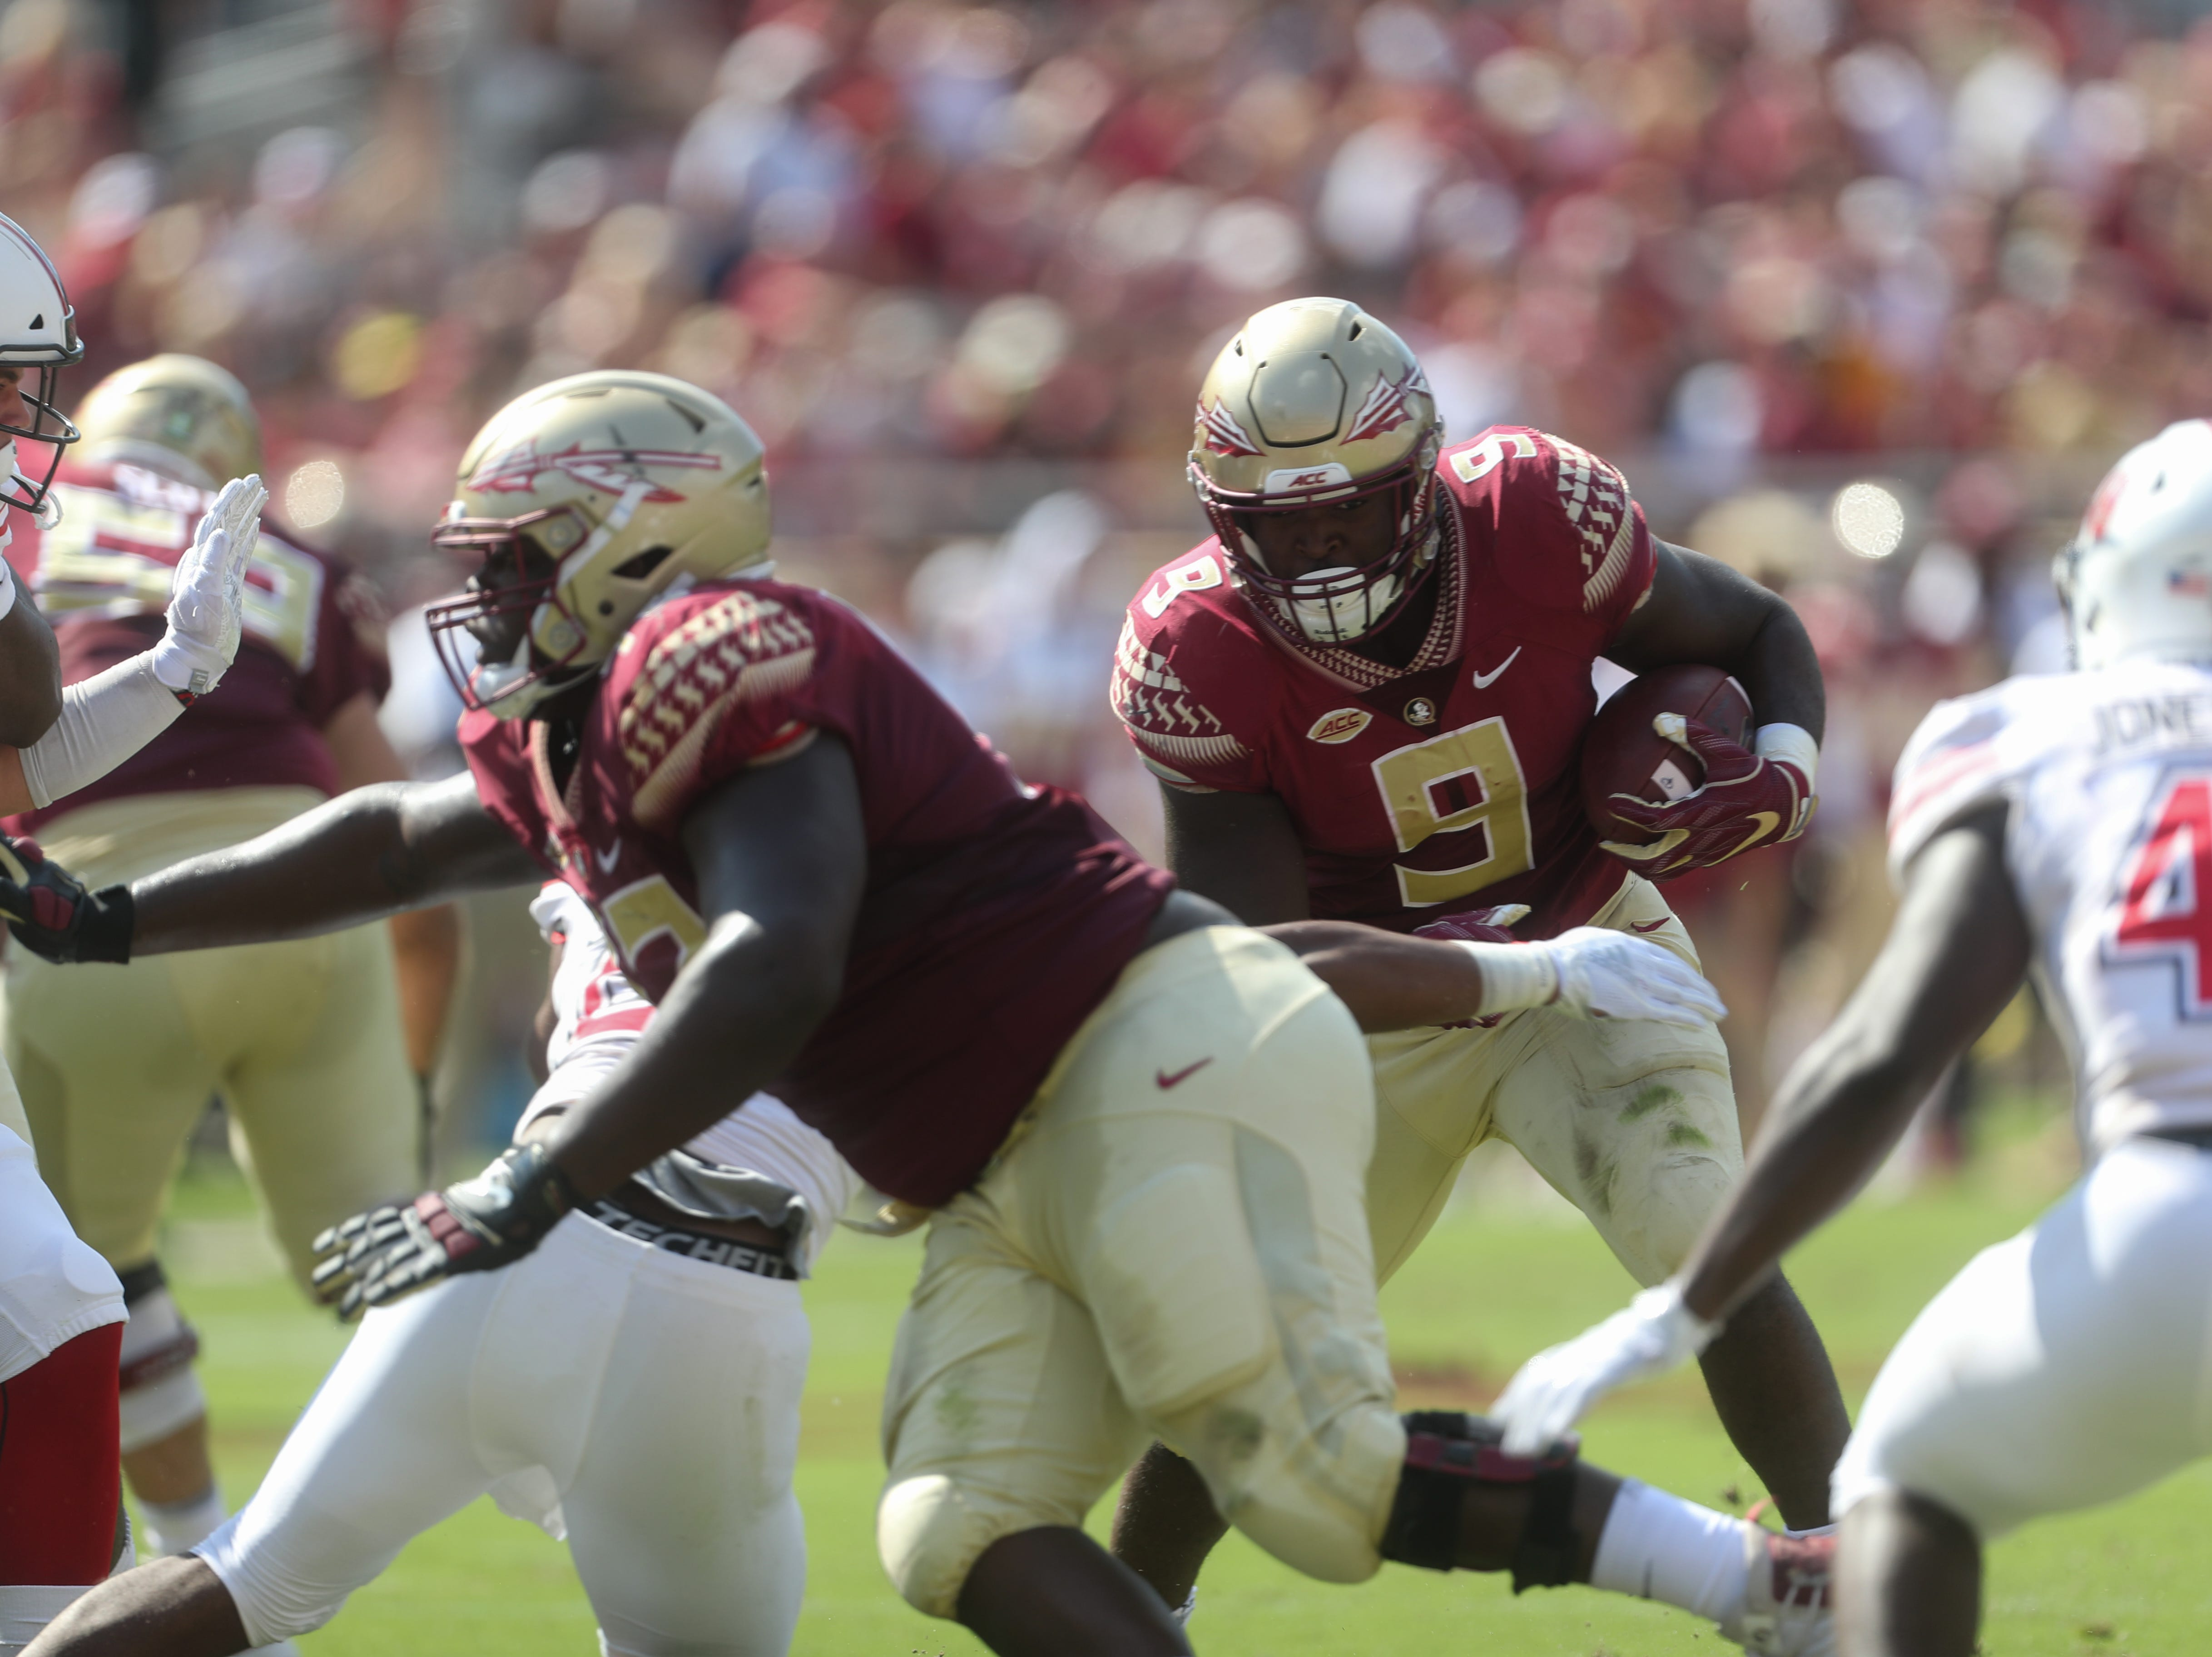 Florida State Seminoles running back Jacques Patrick (9) runs the ball during a game between the Florida State University Seminoles and the Northern Illinois University Huskies at Doak S. Campbell Stadium in Tallahassee, Fla. Saturday, September 22, 2018.